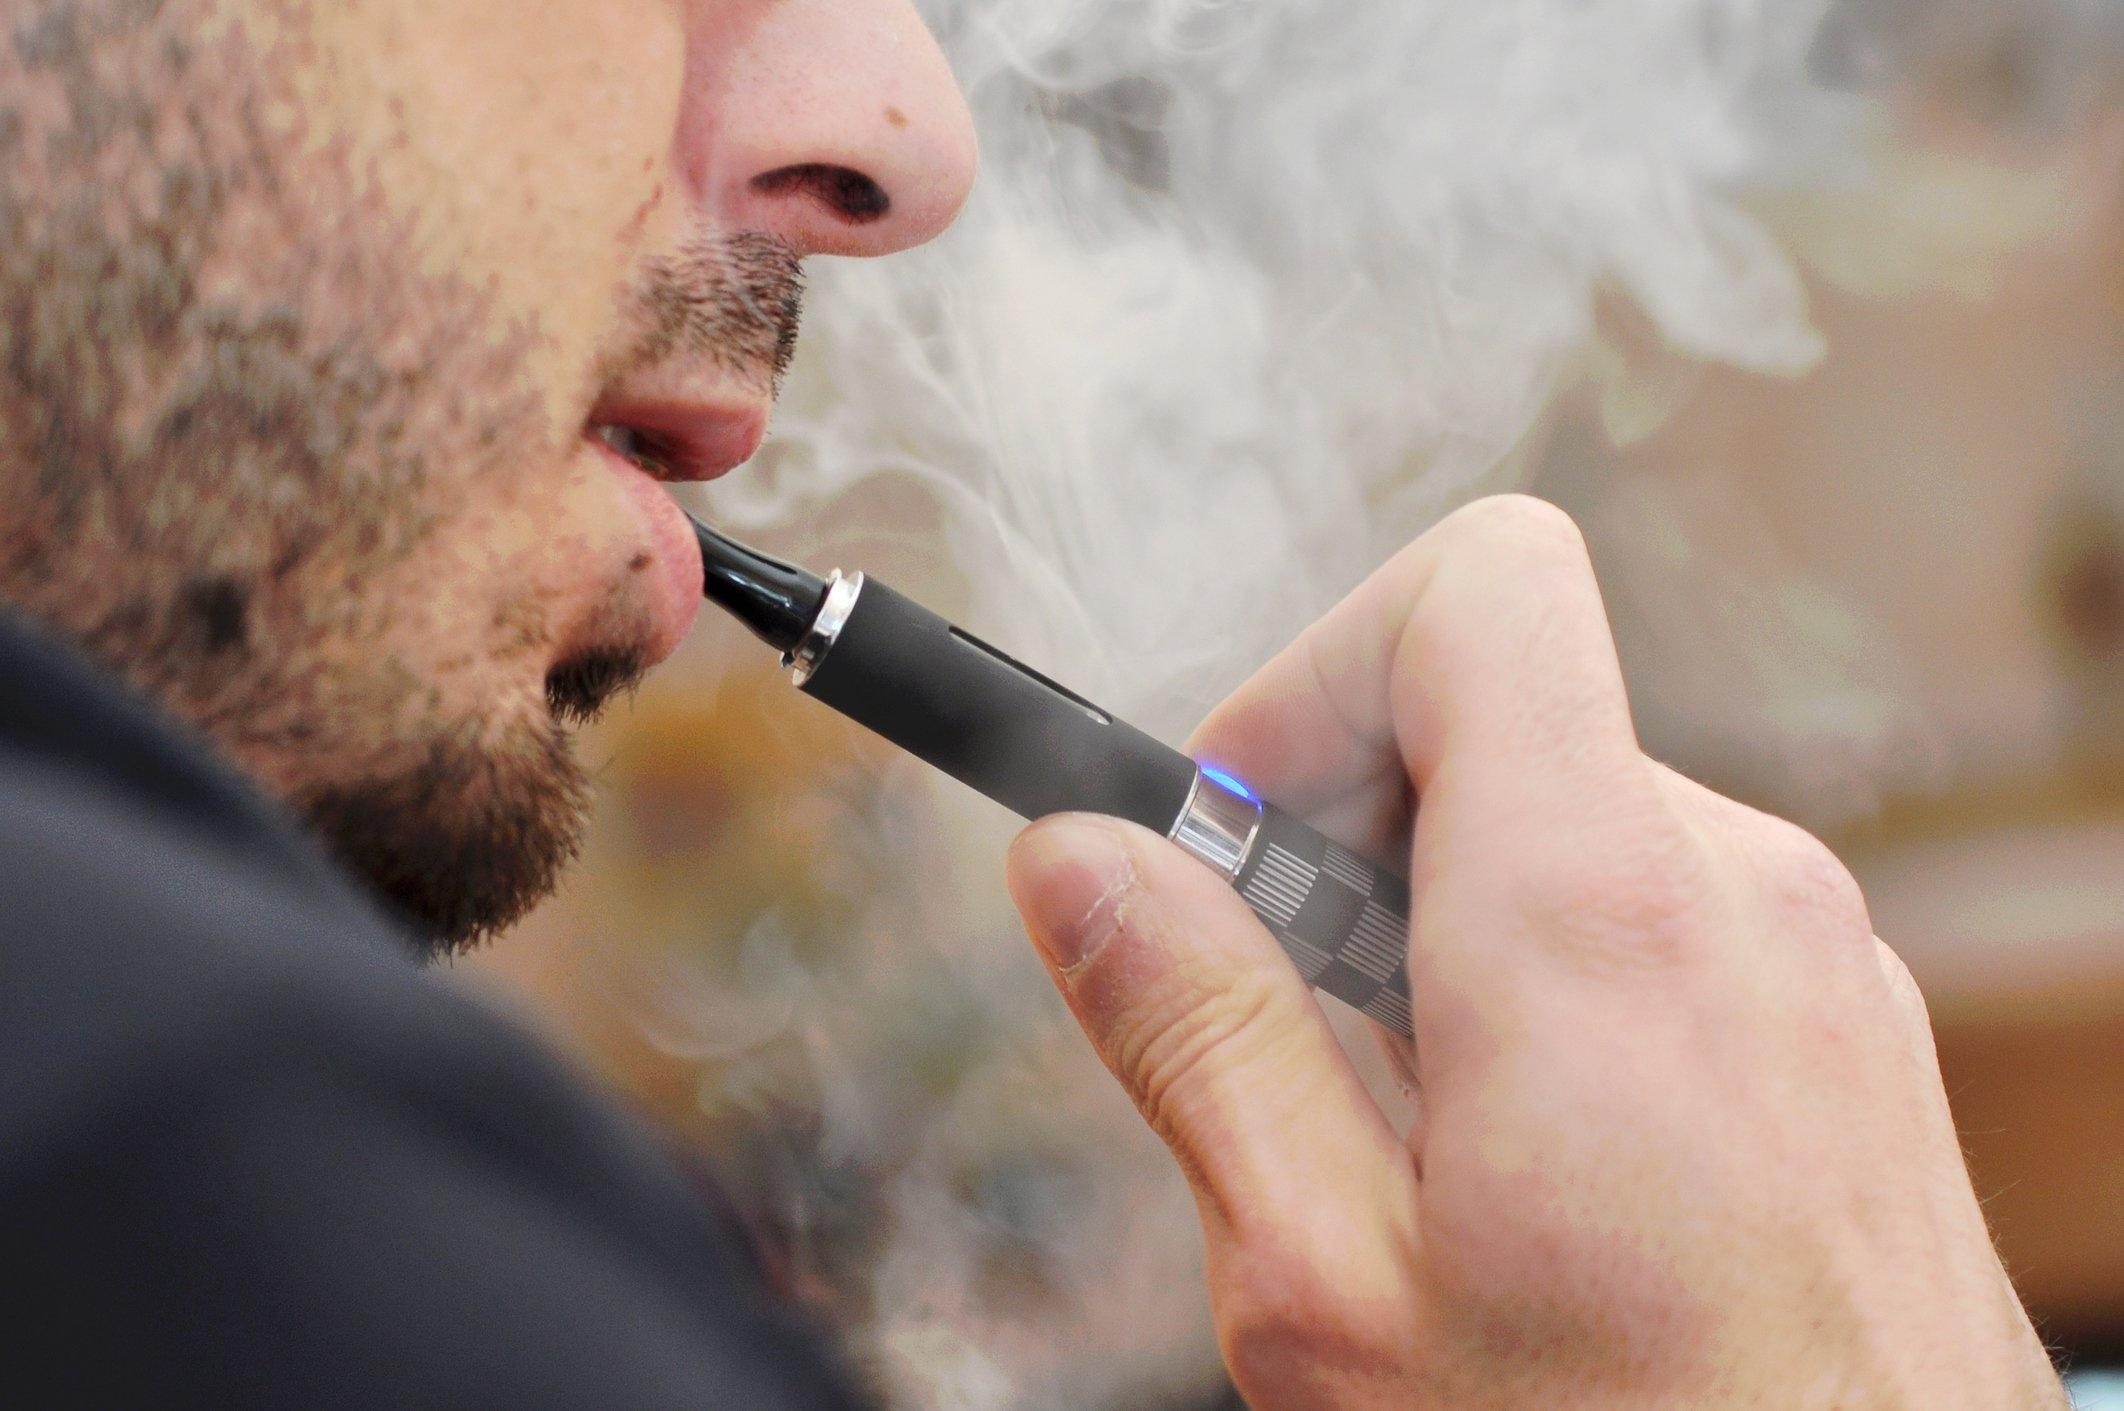 Vaping study shows illnesses most likely caused by